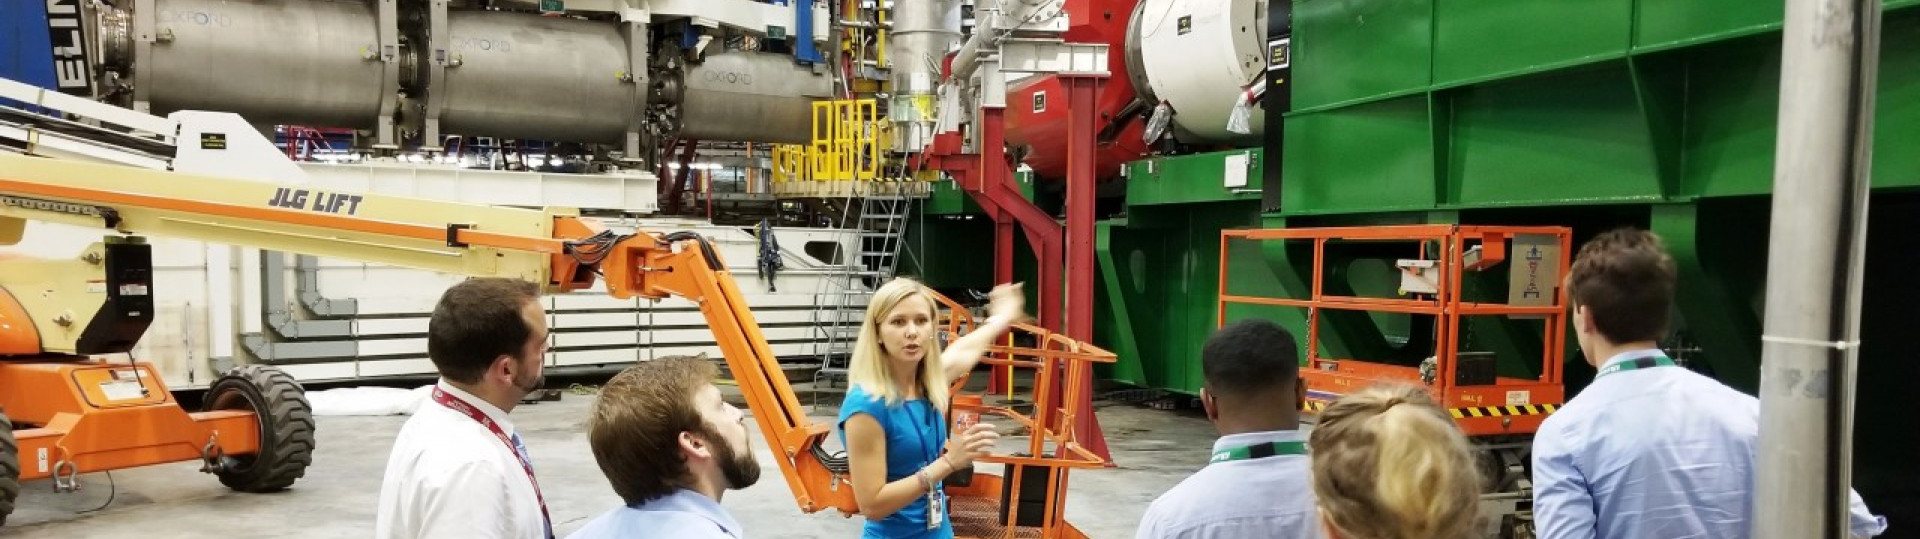 tours at jefferson lab